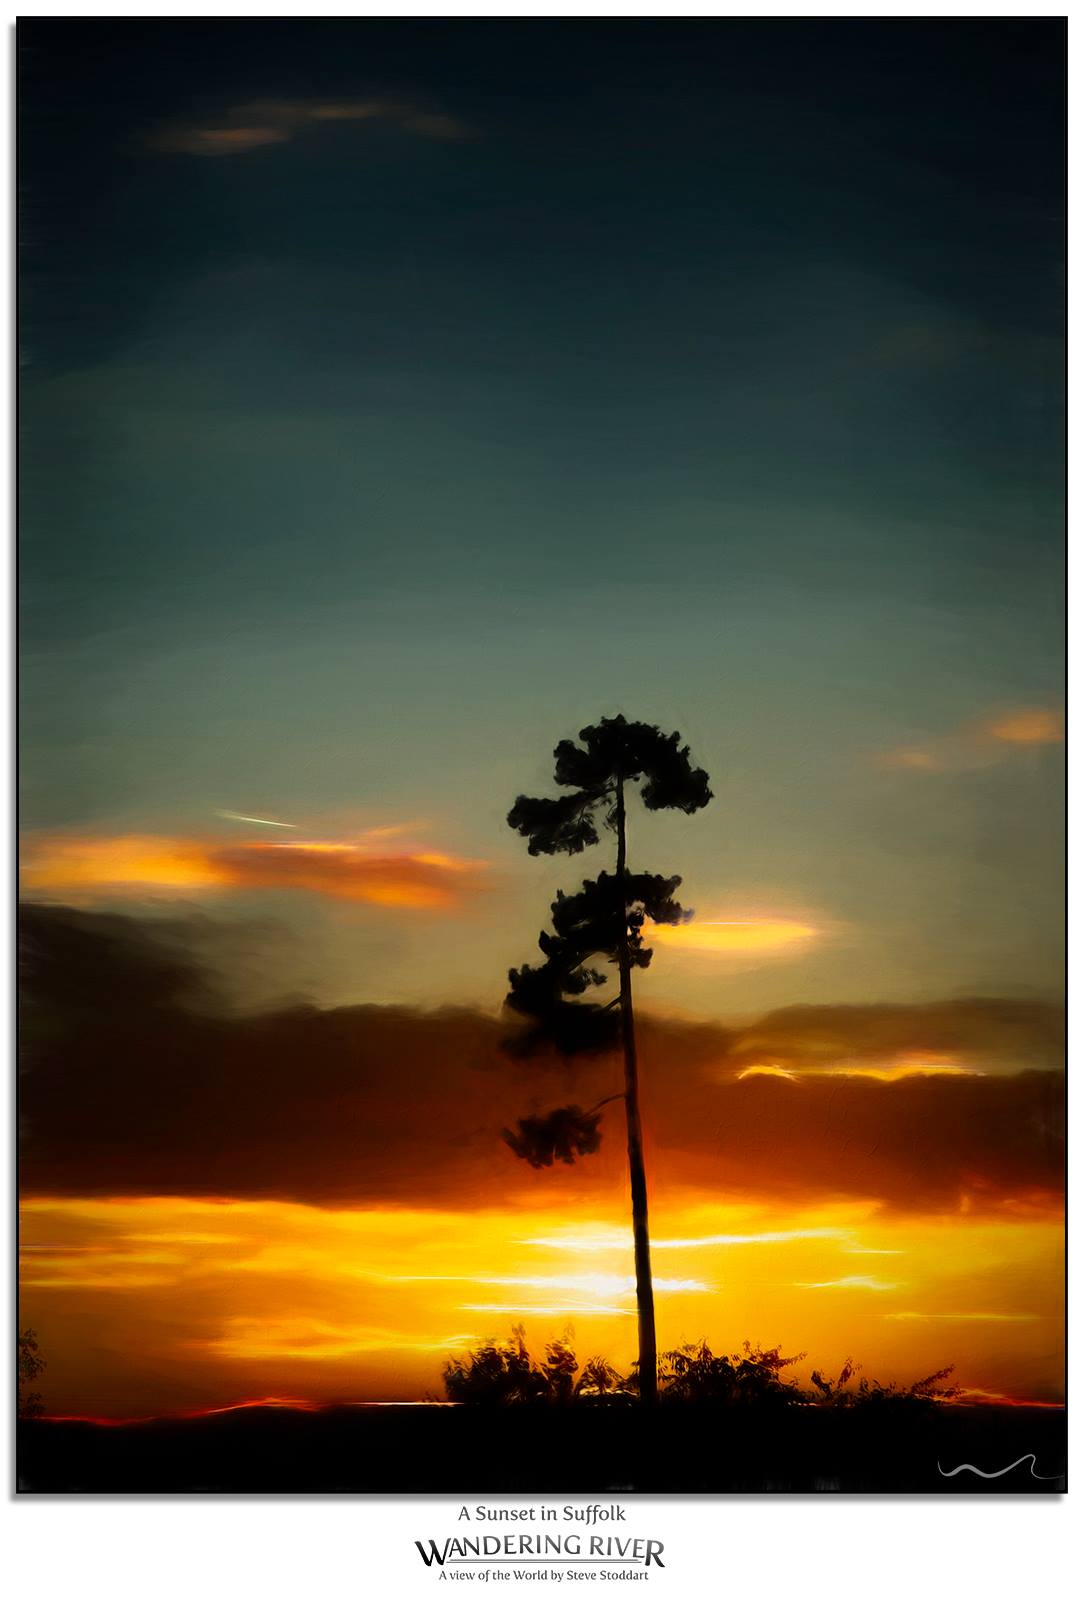 A lone pine silhouetted against a golden sunset